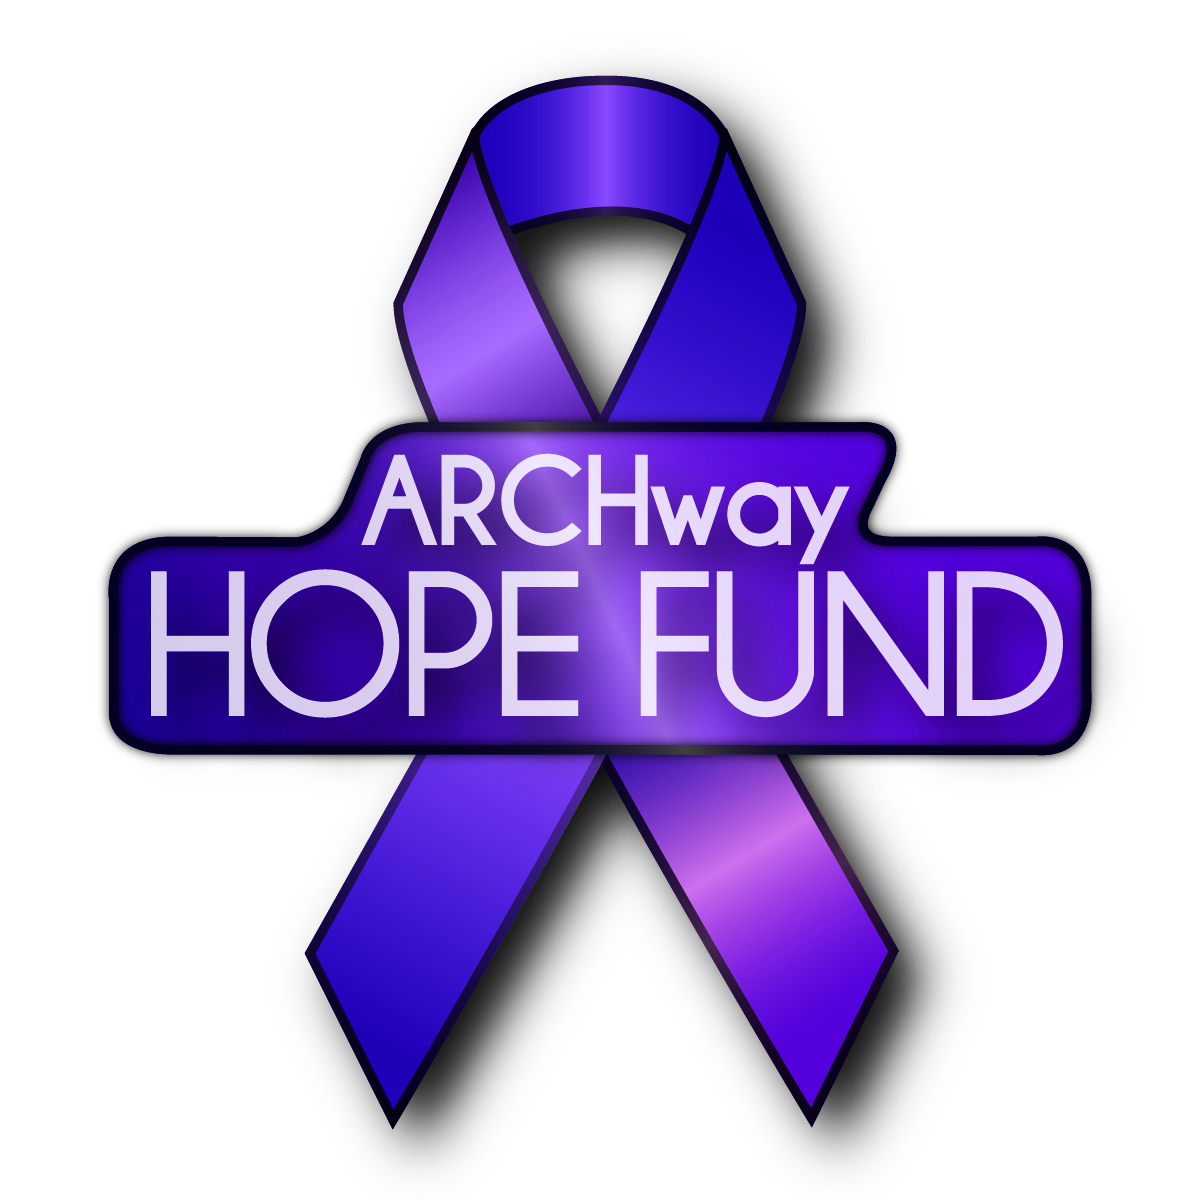 ARCHway HOPE Fund logo,purple ribbon